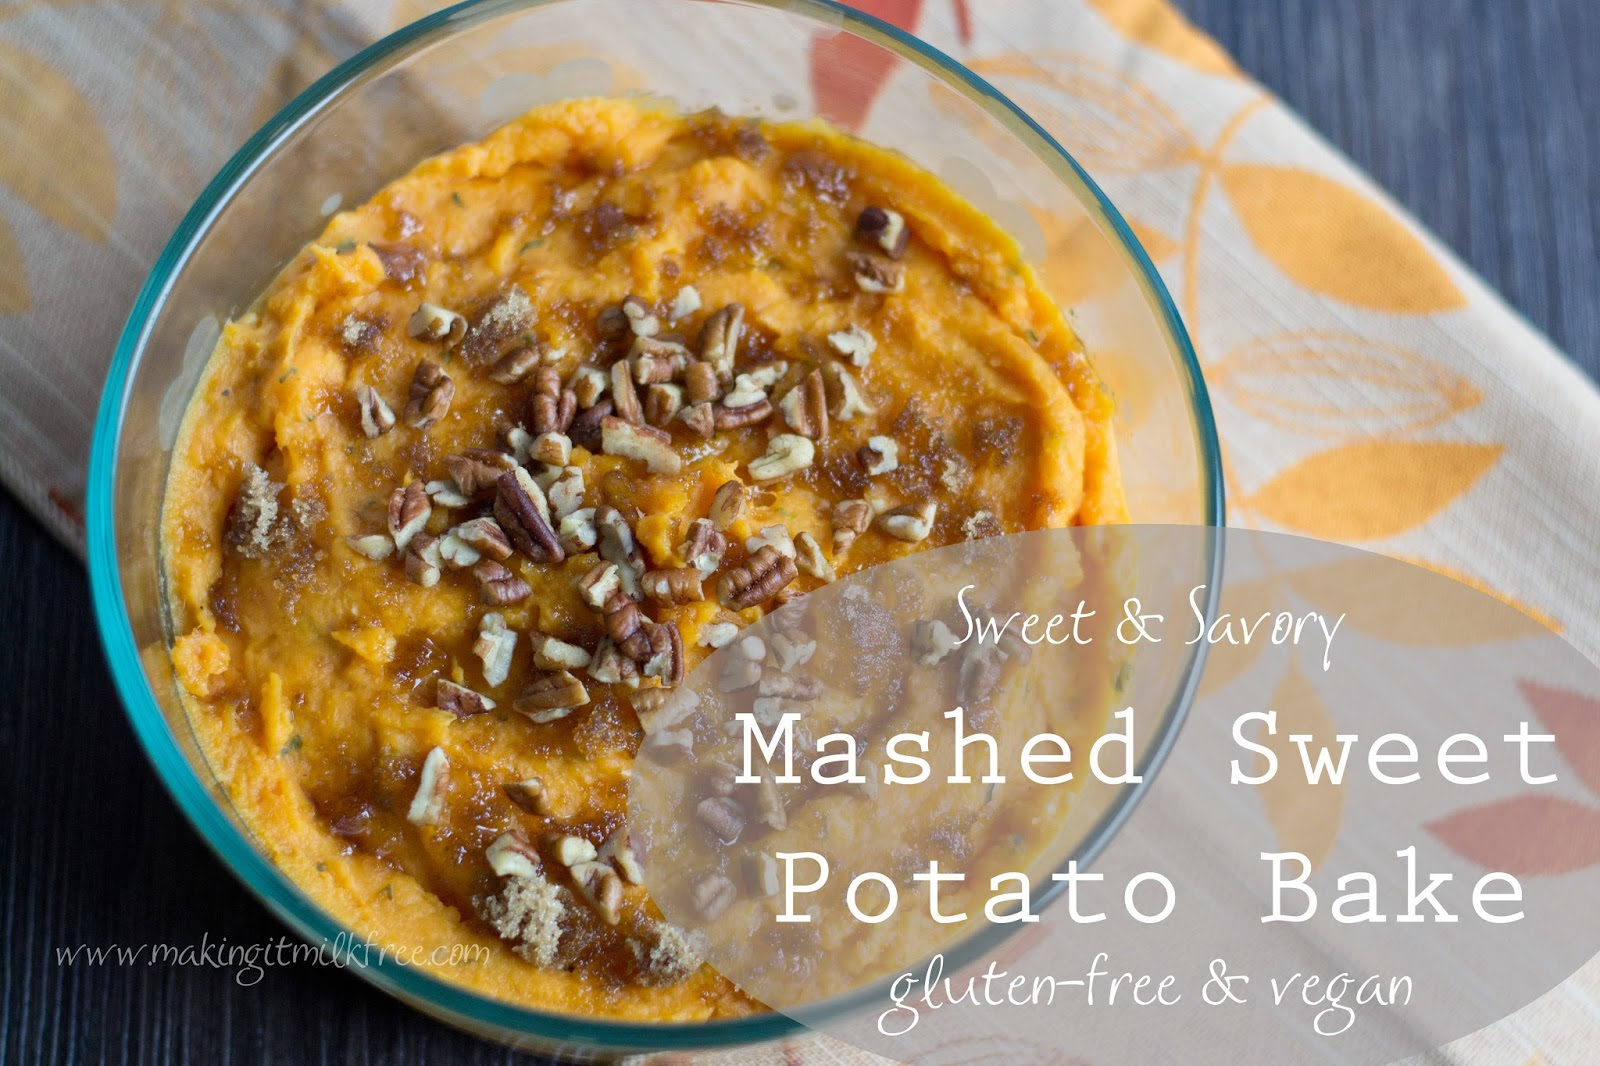 #glutenfree #vegan #mashed_potatoes #thanksgiving #recipes